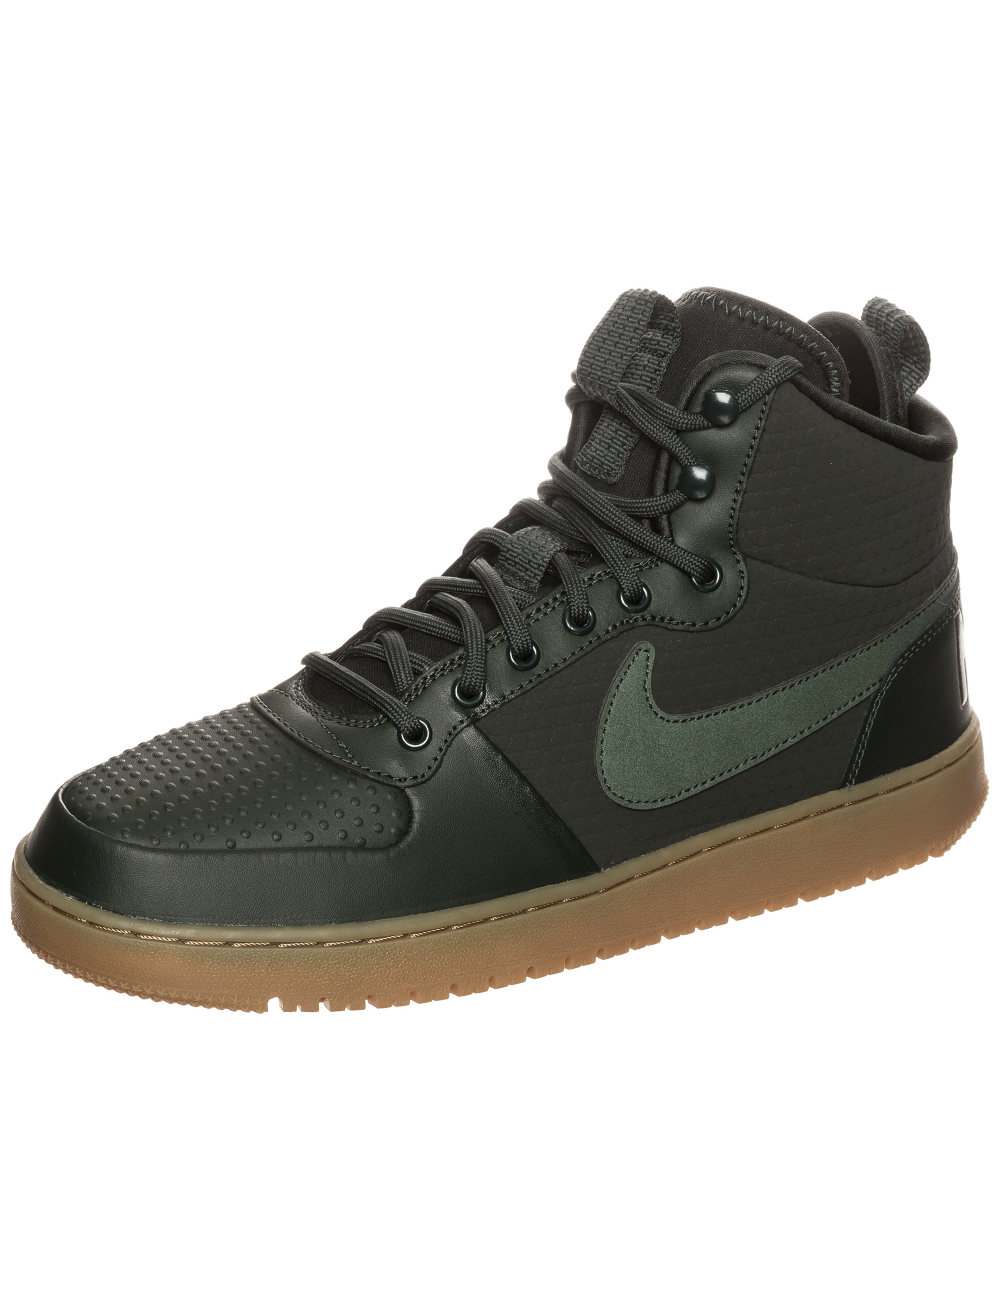 Chaussures sportif Sneakers chaussures Sport Court Borough Mid Winter Vert 2018